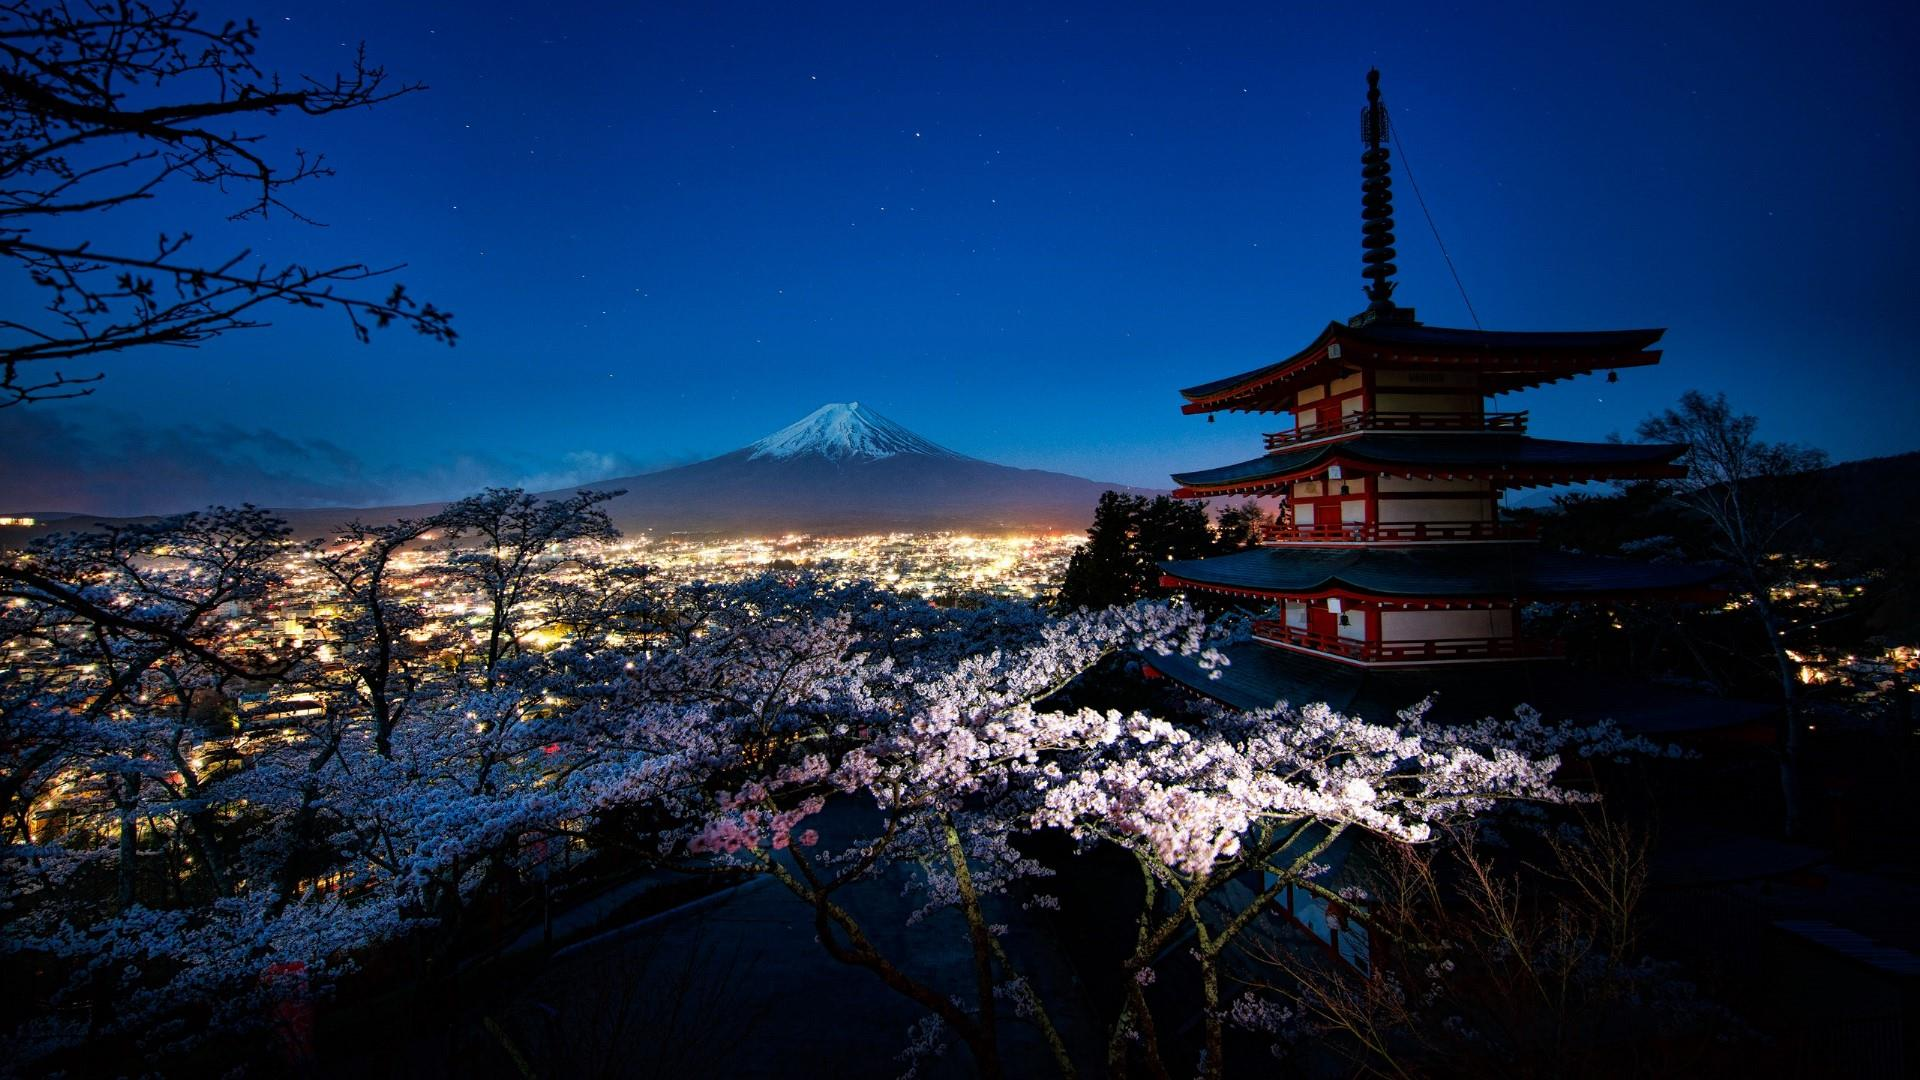 Night Mount Fuji Wallpapers   Top Night Mount Fuji 1920x1080